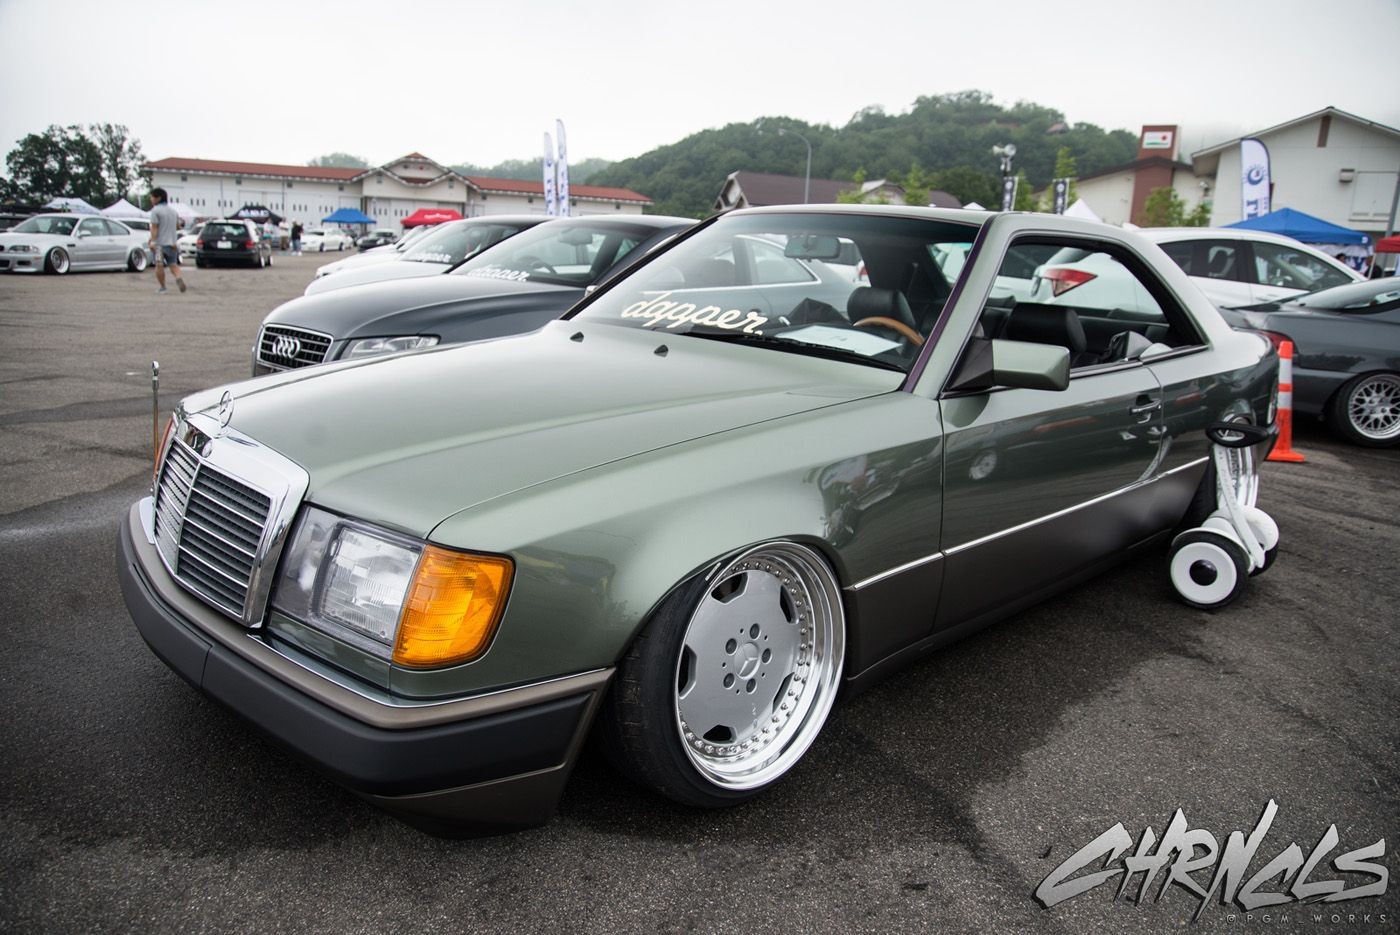 90s mercedes benz w124 coupe bagged on amg wheels automotive pinterest mercedes benz benz. Black Bedroom Furniture Sets. Home Design Ideas